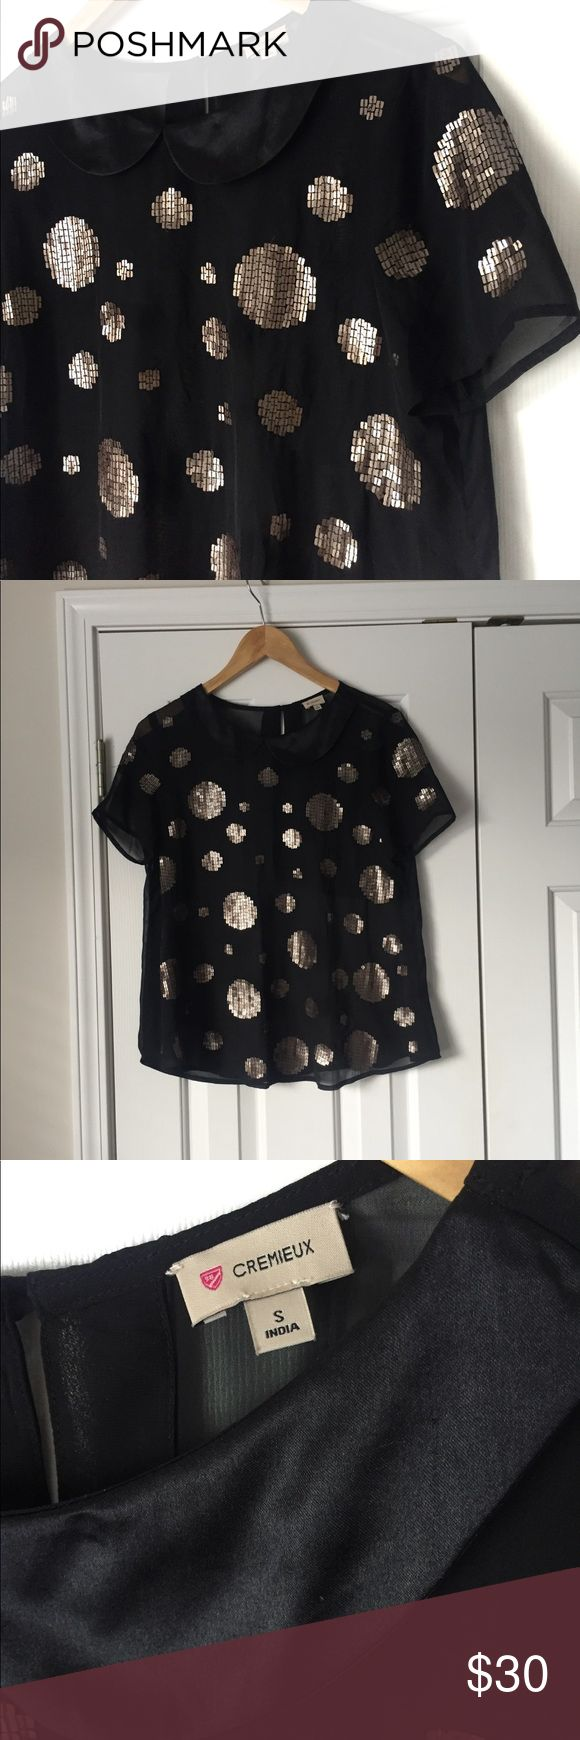 Cremieux short sleeve sheer top bronze polka dot In excellent condition. Size small. Bronze sequins. Polka dots. Black sheer material. Peter Pan collar. Loose fitting. Daniel Cremieux Tops Blouses